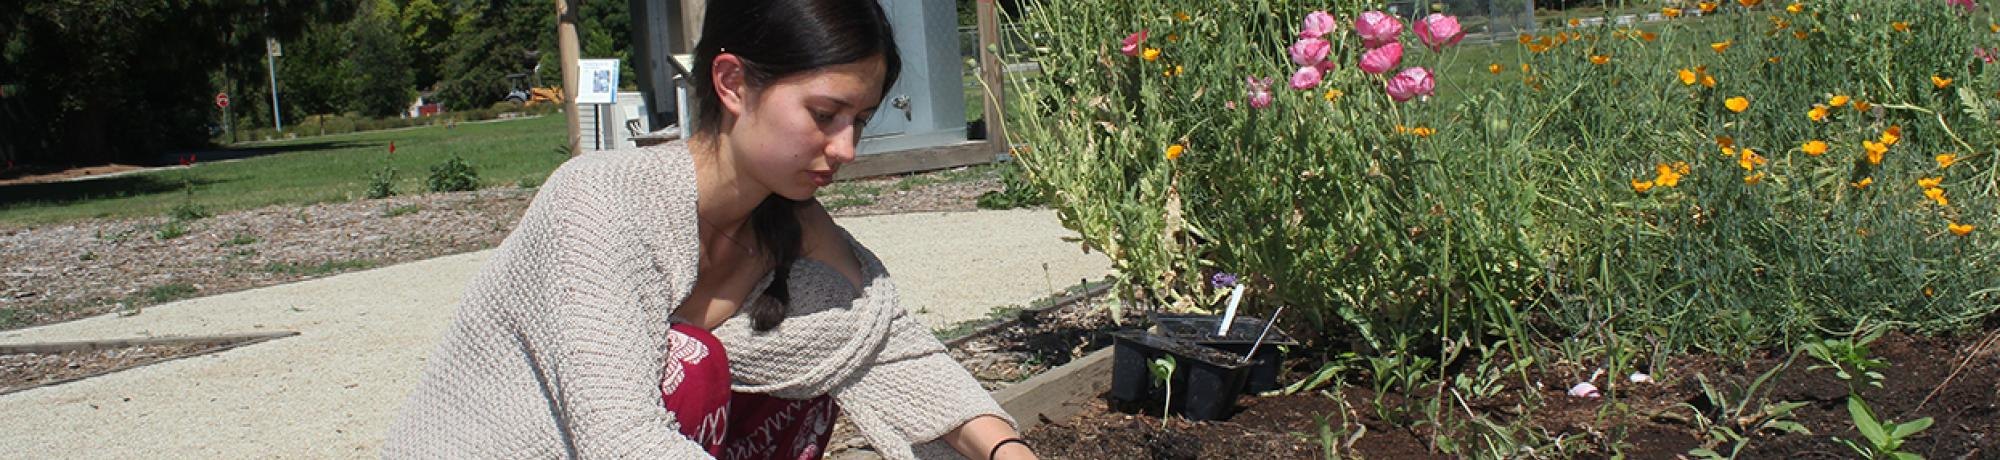 Girl in pink dress tending to plant bed.